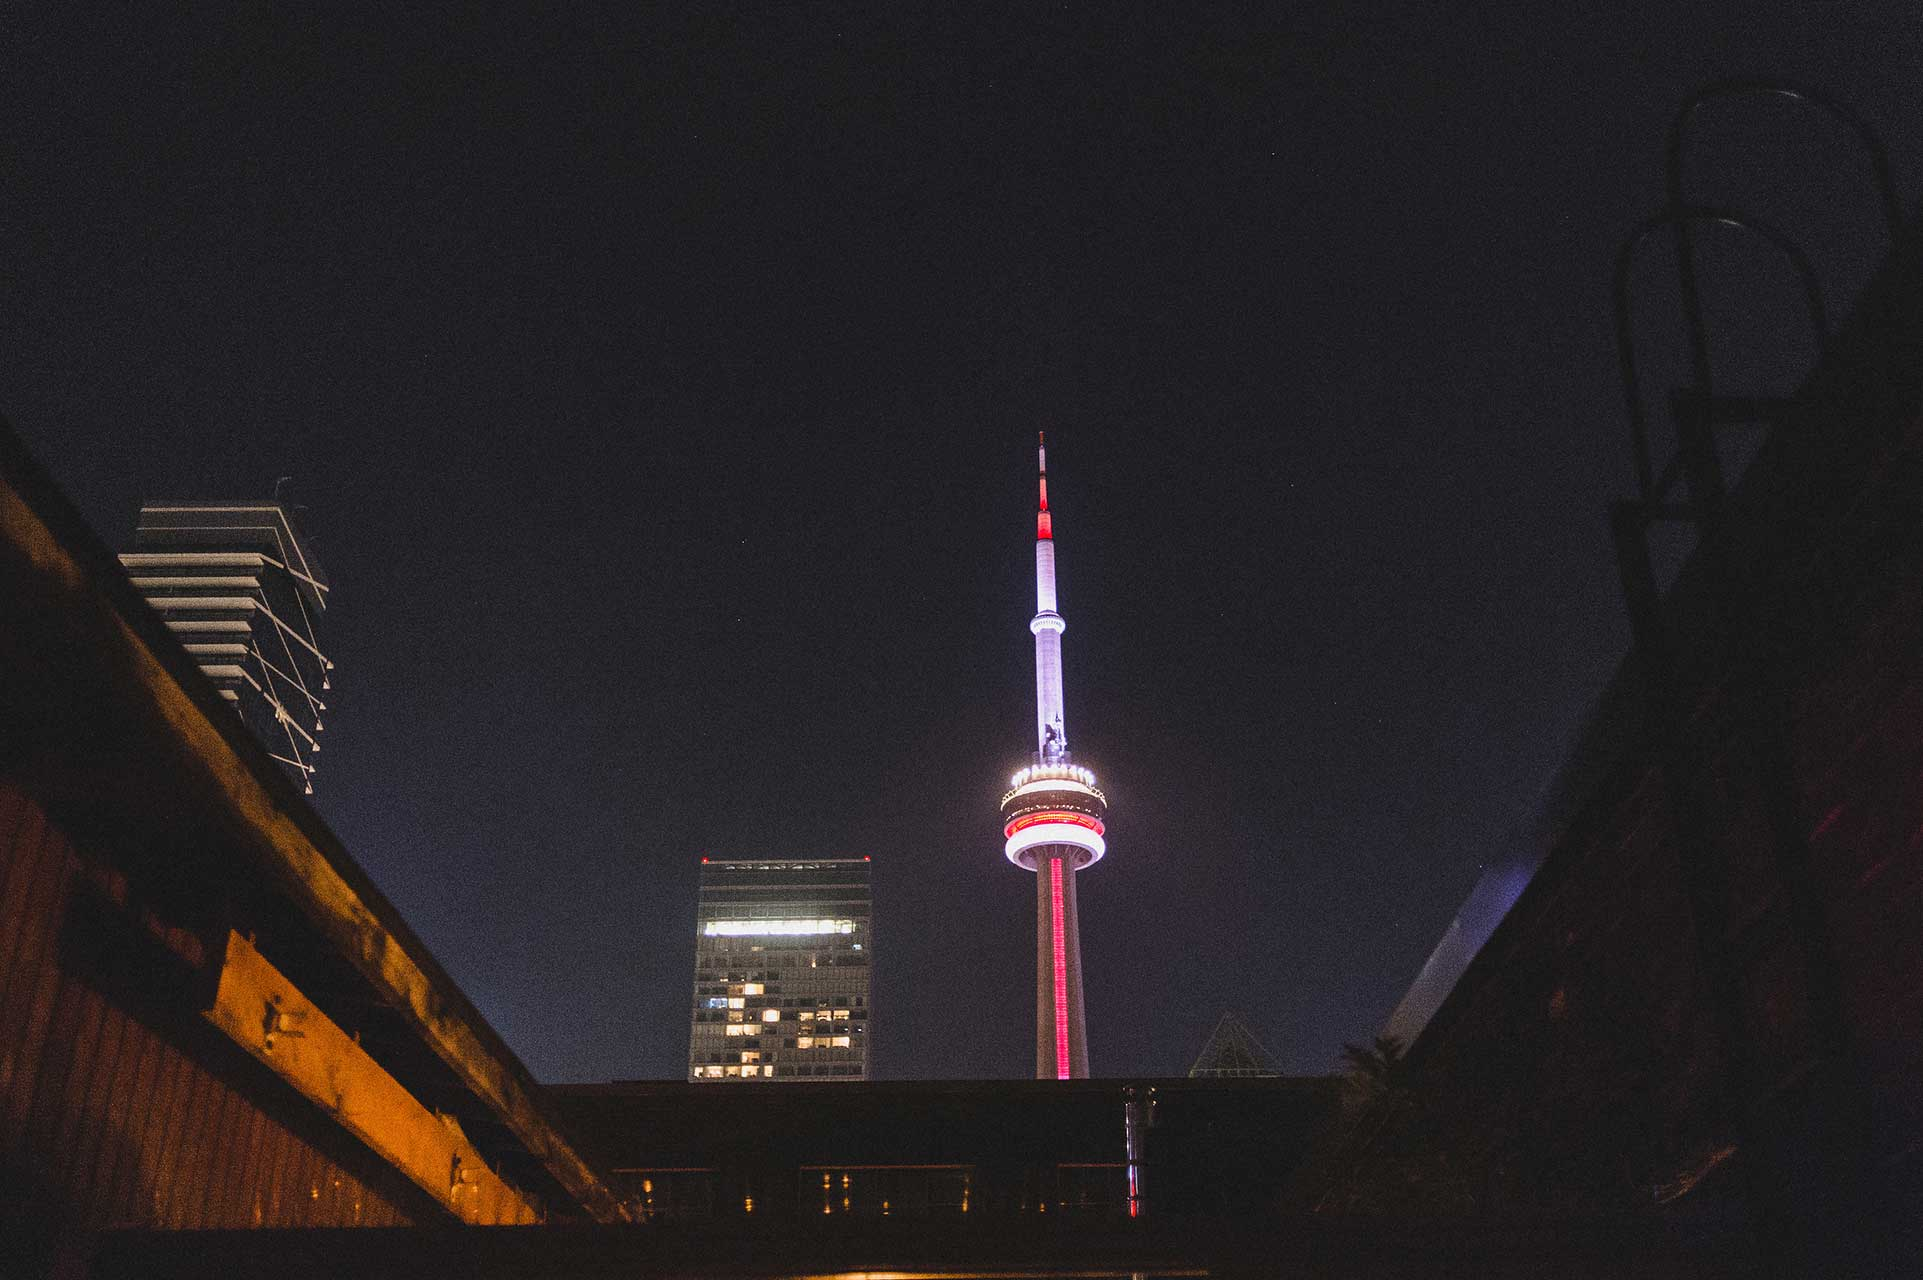 Wedding Venues Toronto - View of The CN Tower - Rooftop Terrace